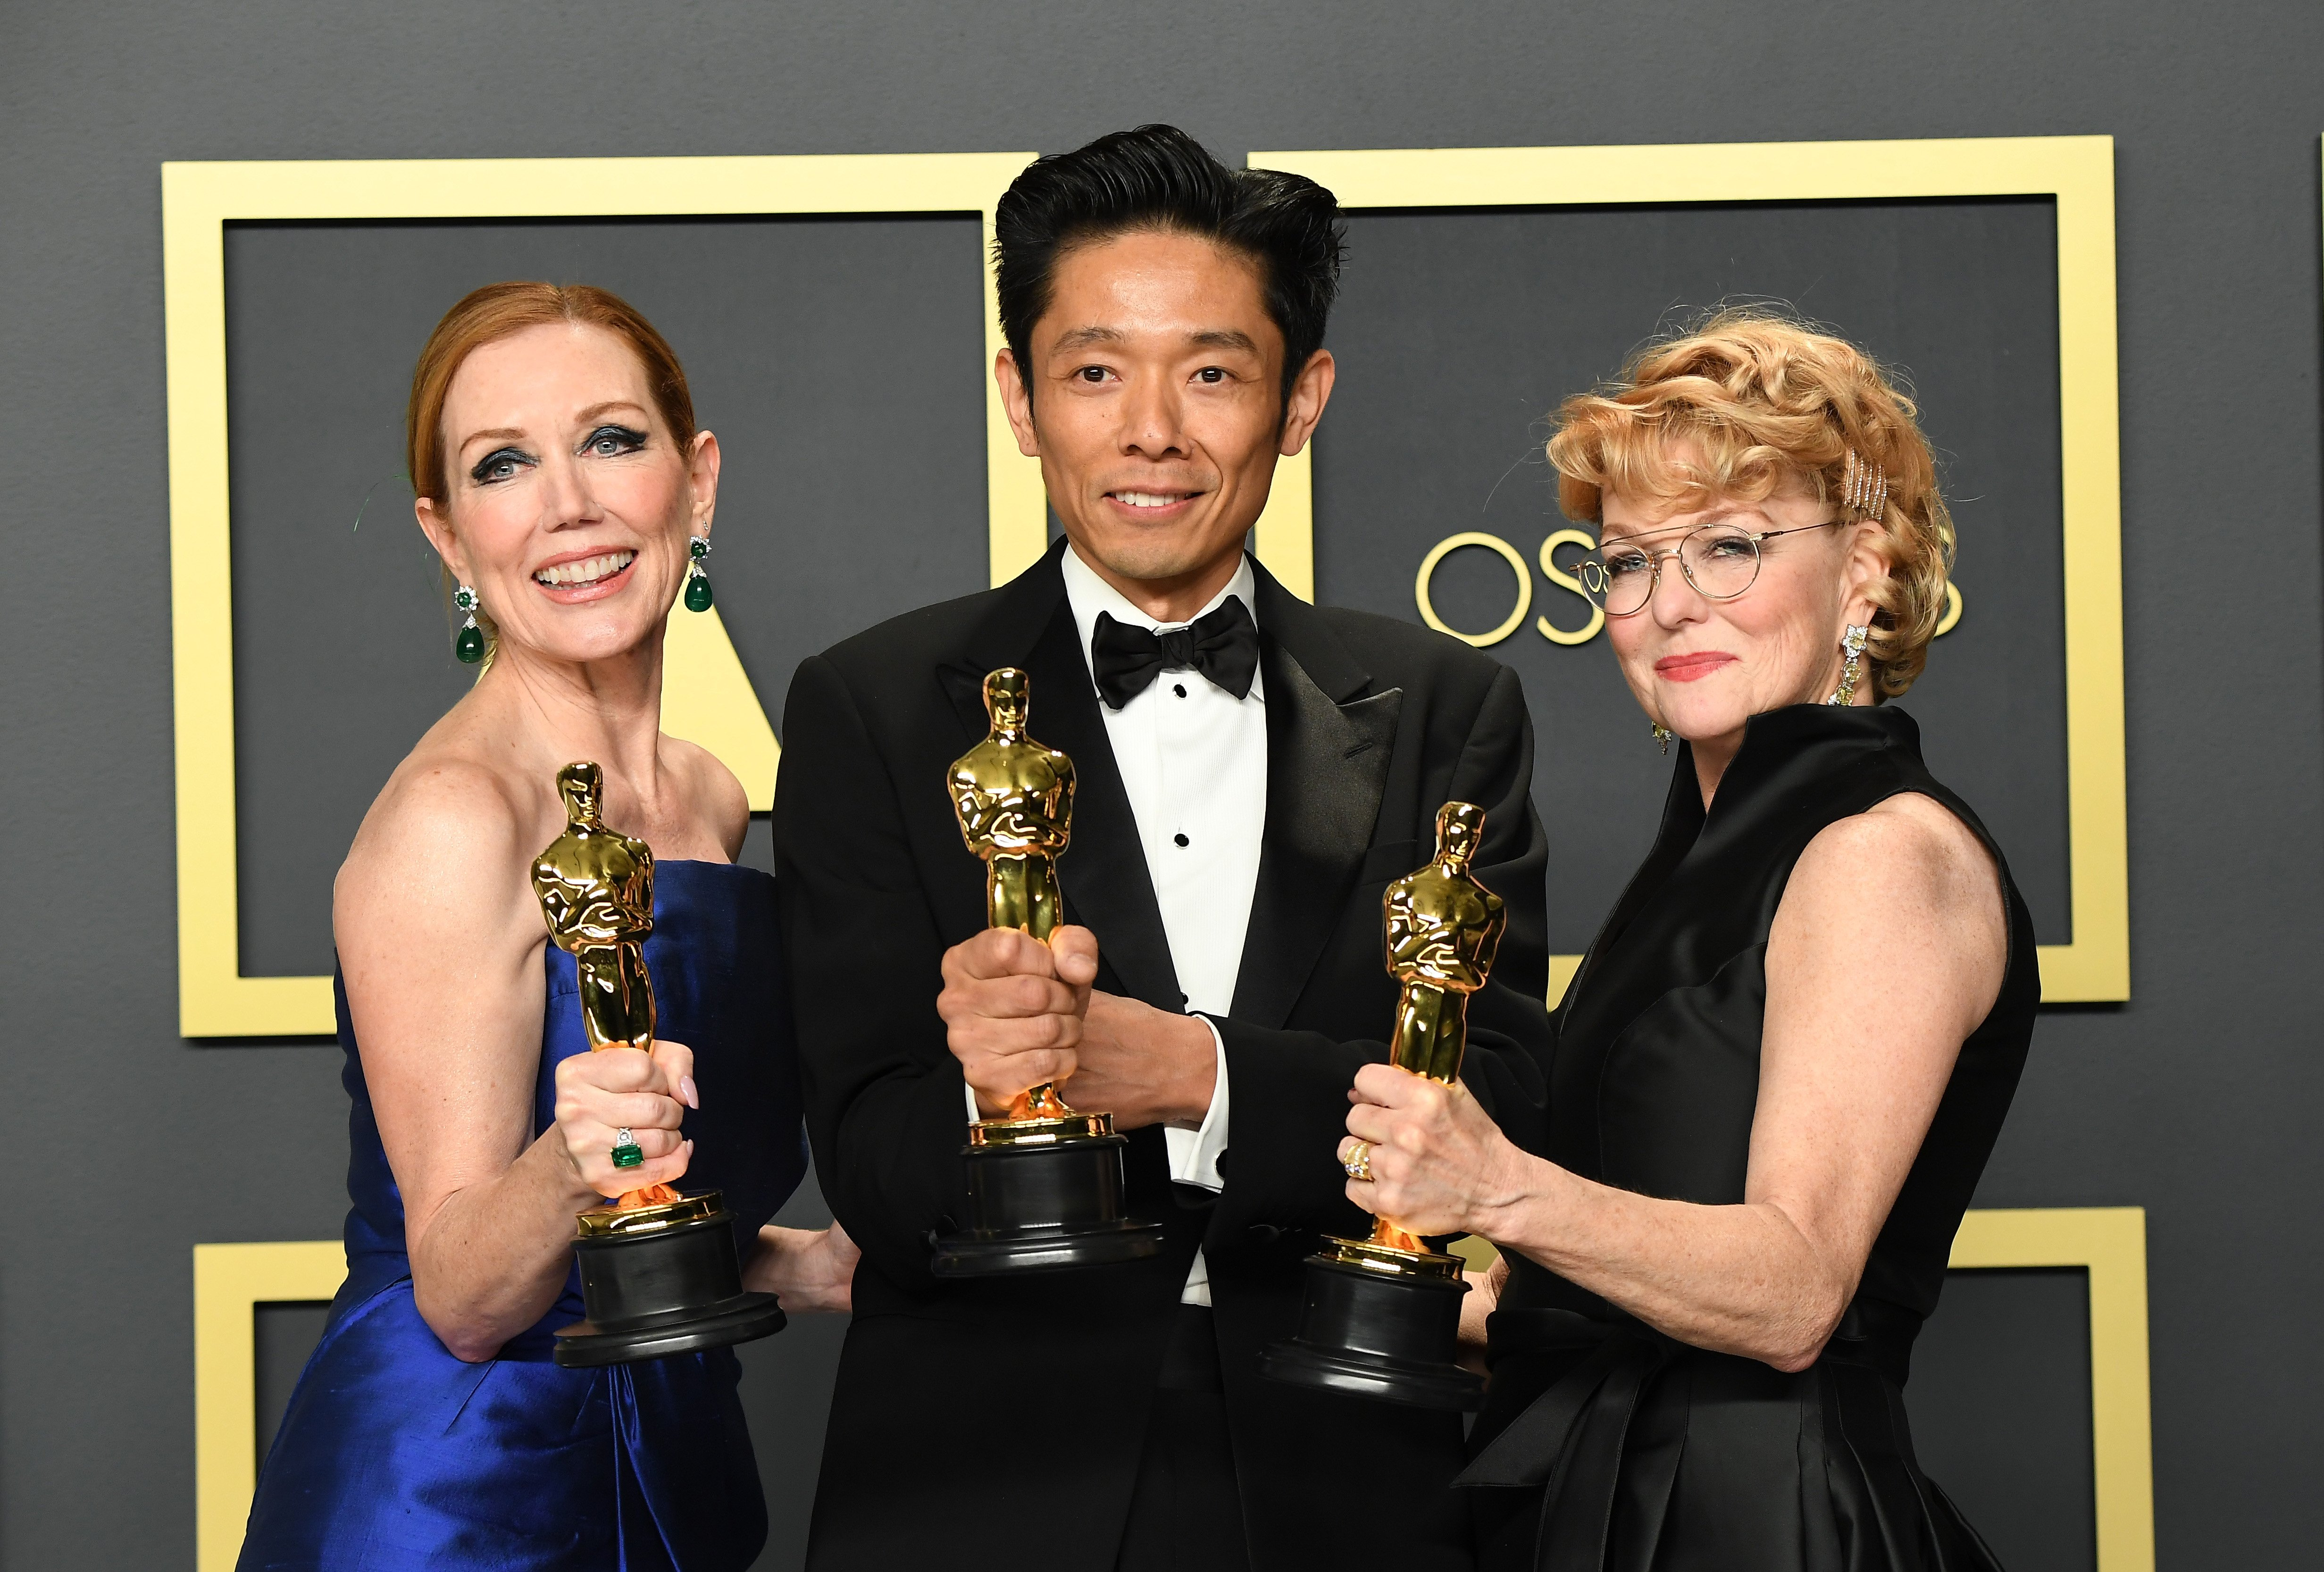 Oscar Makeup and Hairstyling Winner 2020 is BOMBSHELL - Oscars 2020 News   92nd Academy Awards